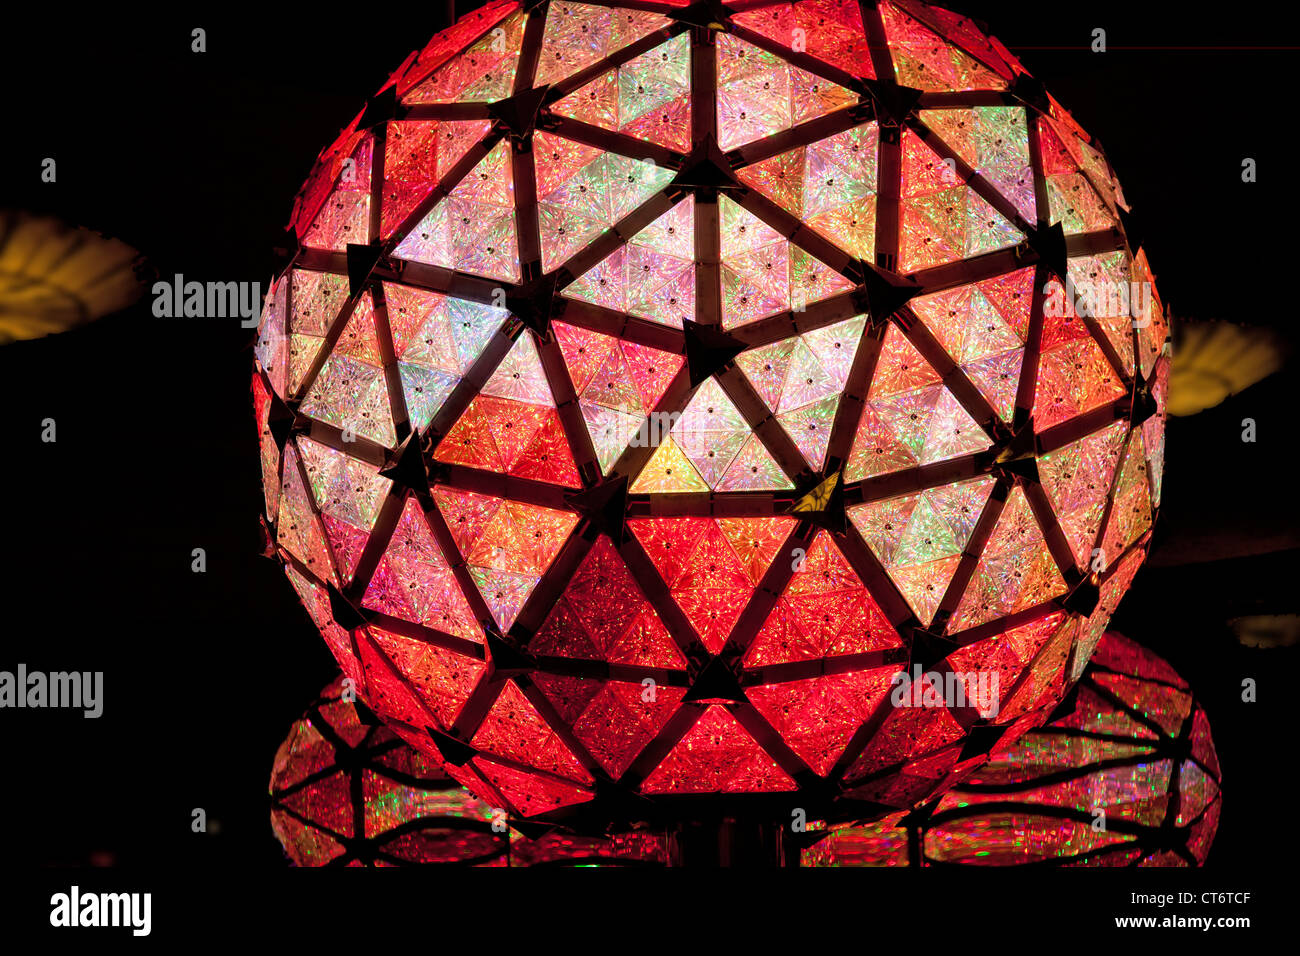 United States of America. New York. Manhattan. Time Square. Crystal ball. - Stock Image